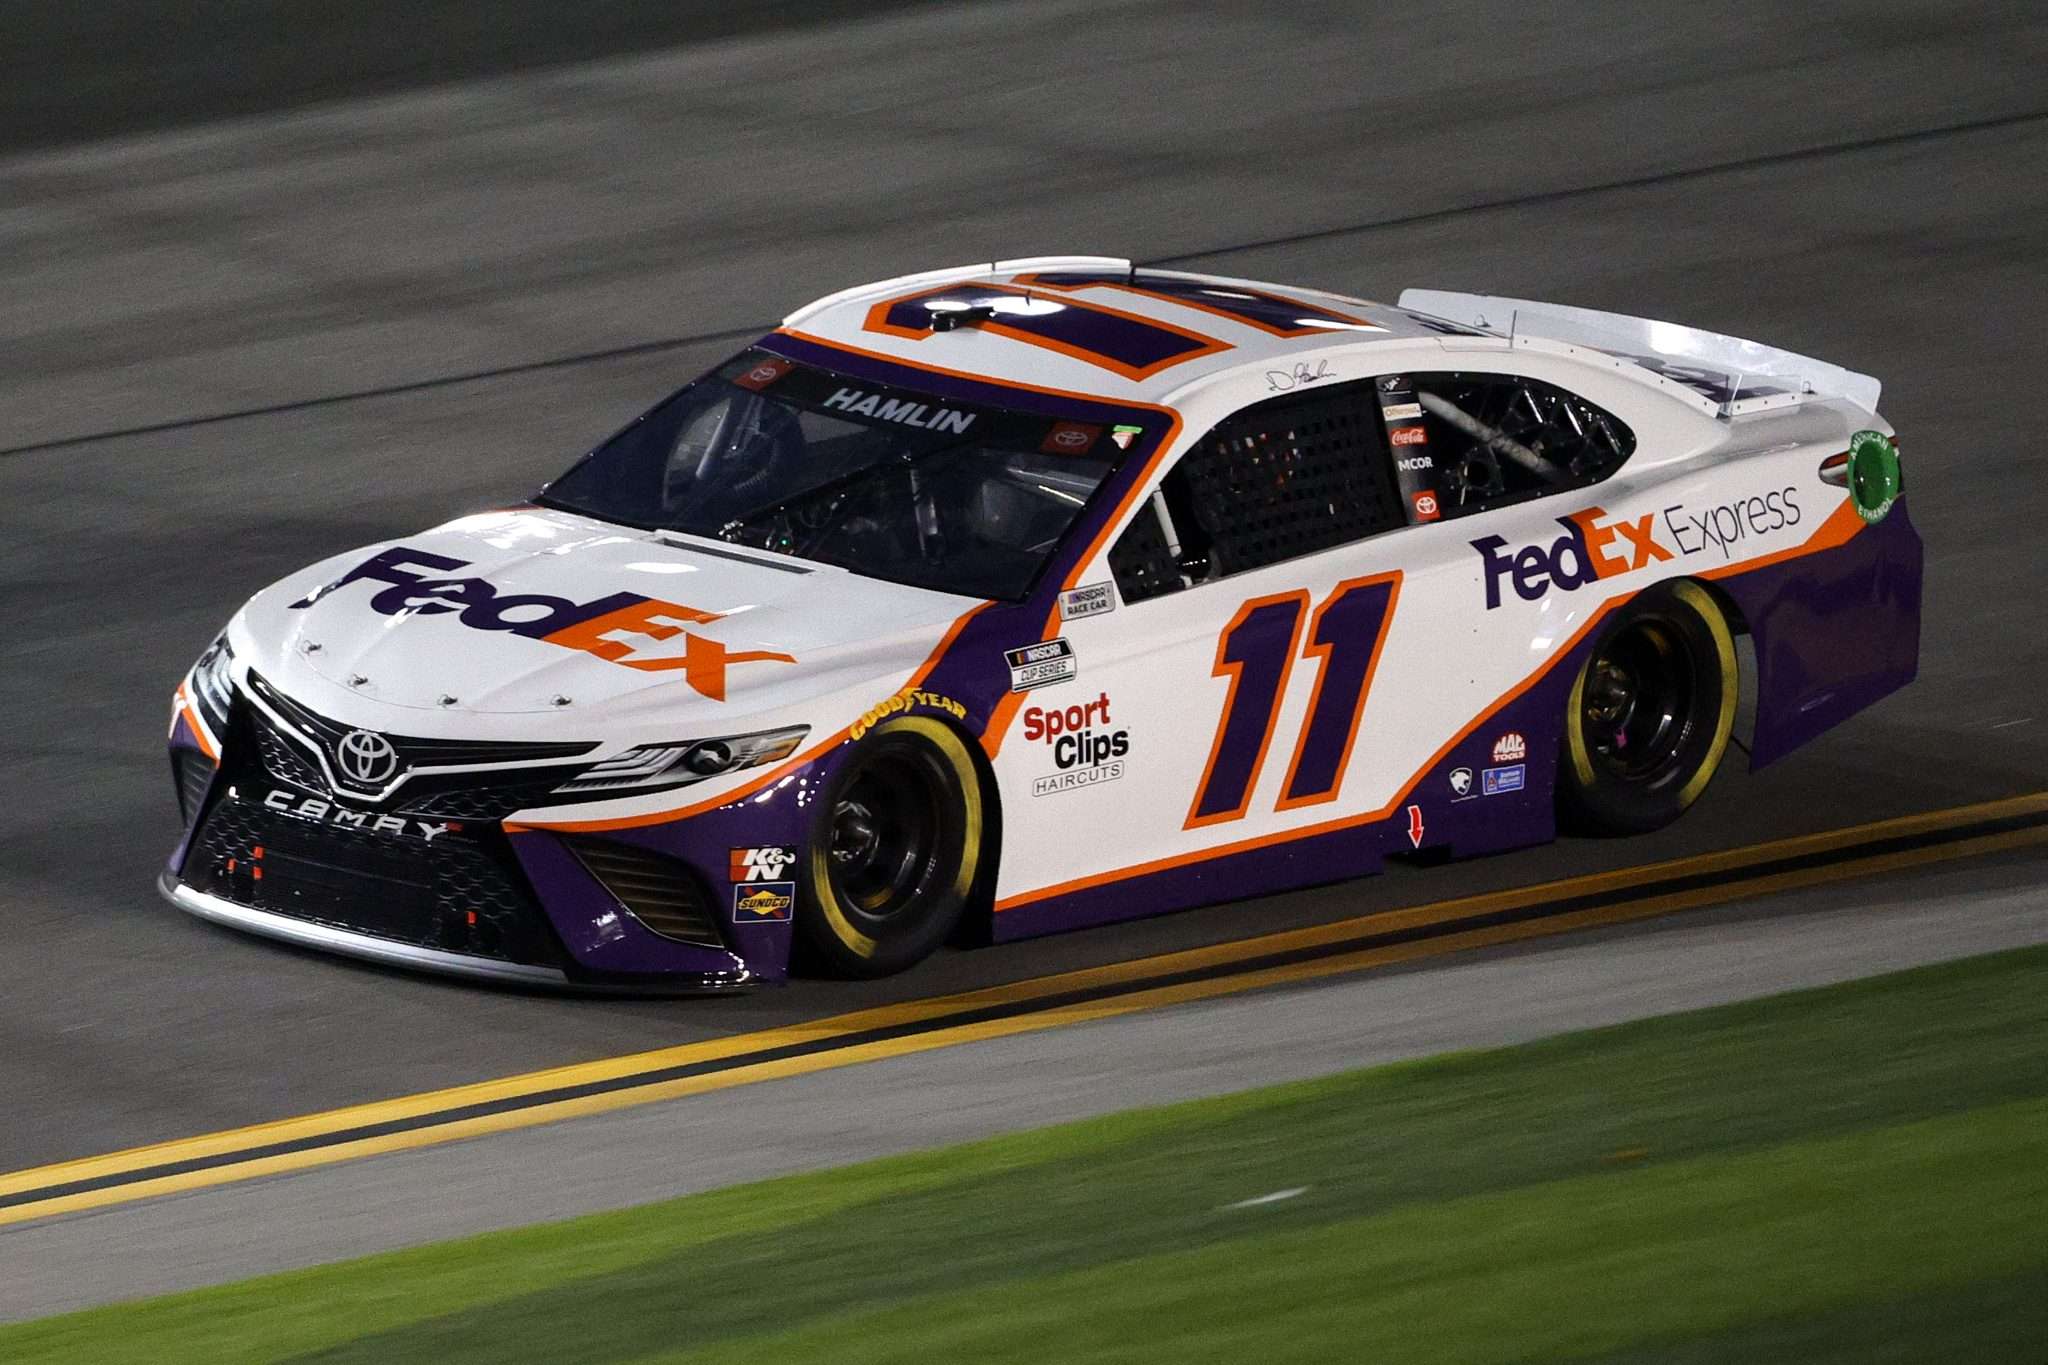 DAYTONA BEACH, FLORIDA - FEBRUARY 09: Denny Hamlin, driver of the #11 FedEx Express Toyota, drives during the NASCAR Cup Series Busch Clash at Daytona at Daytona International Speedway on February 09, 2021 in Daytona Beach, Florida. (Photo by Chris Graythen/Getty Images) | Getty Images